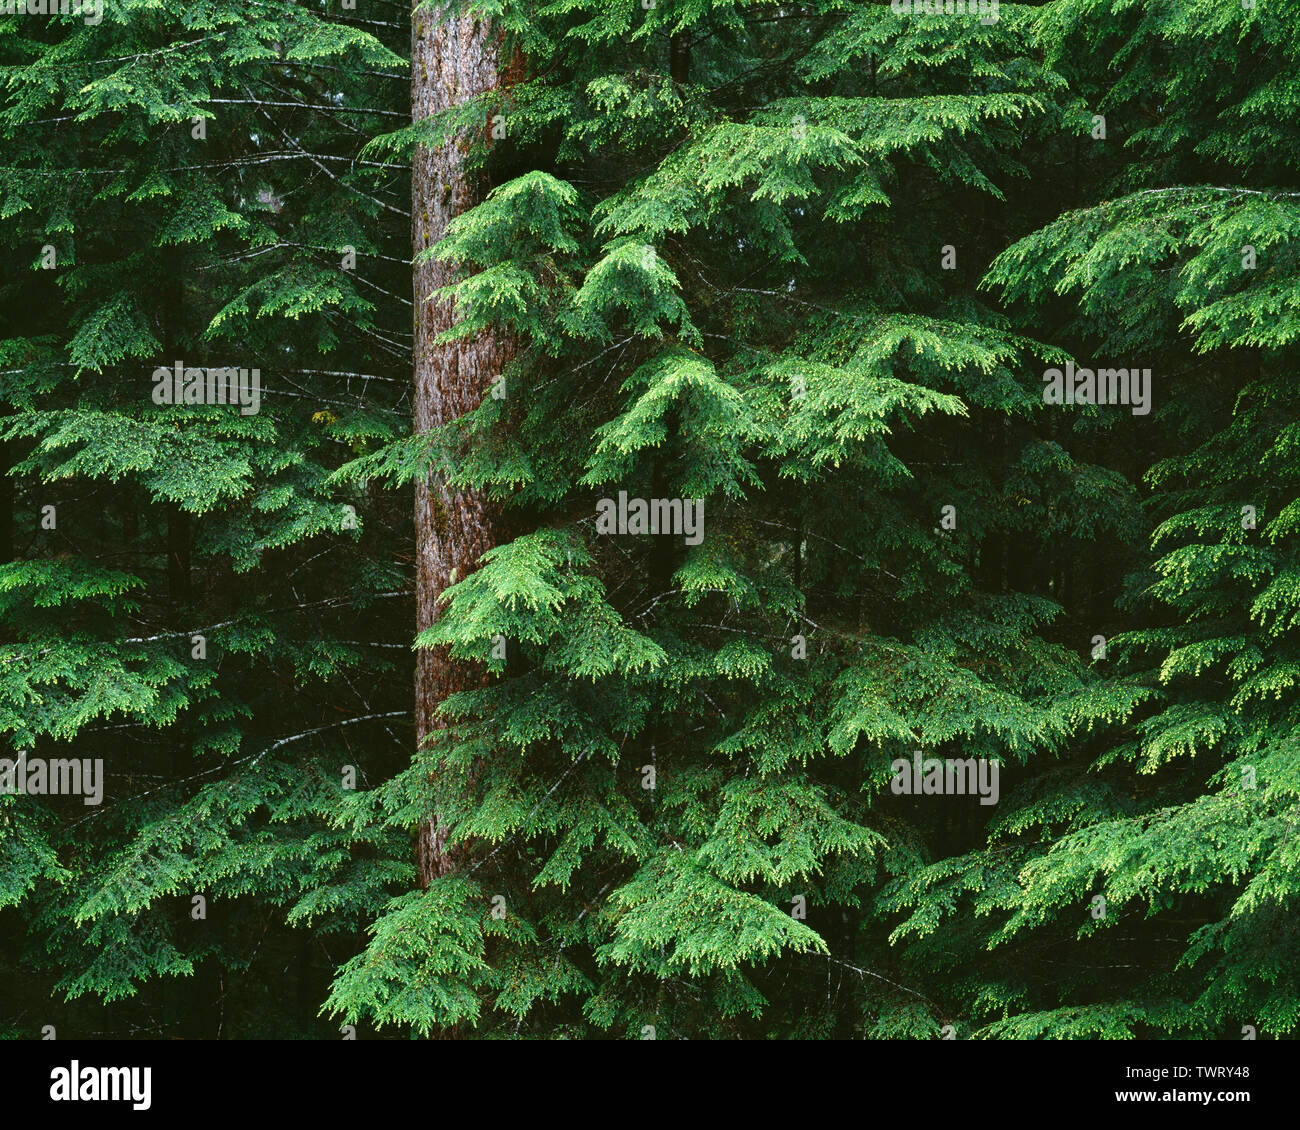 USA, Washington, Olympic National Park, Trunk and layered branches of  western hemlock (Tsuga heterophylla) in Sol Duc Valley. Stock Photo